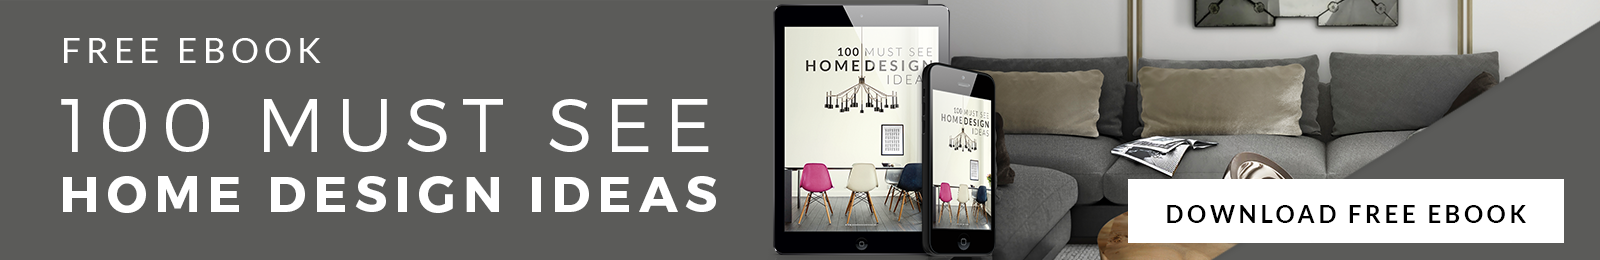 ebook home design ideas  HOME 100 must see home design ideas blog home design ideas